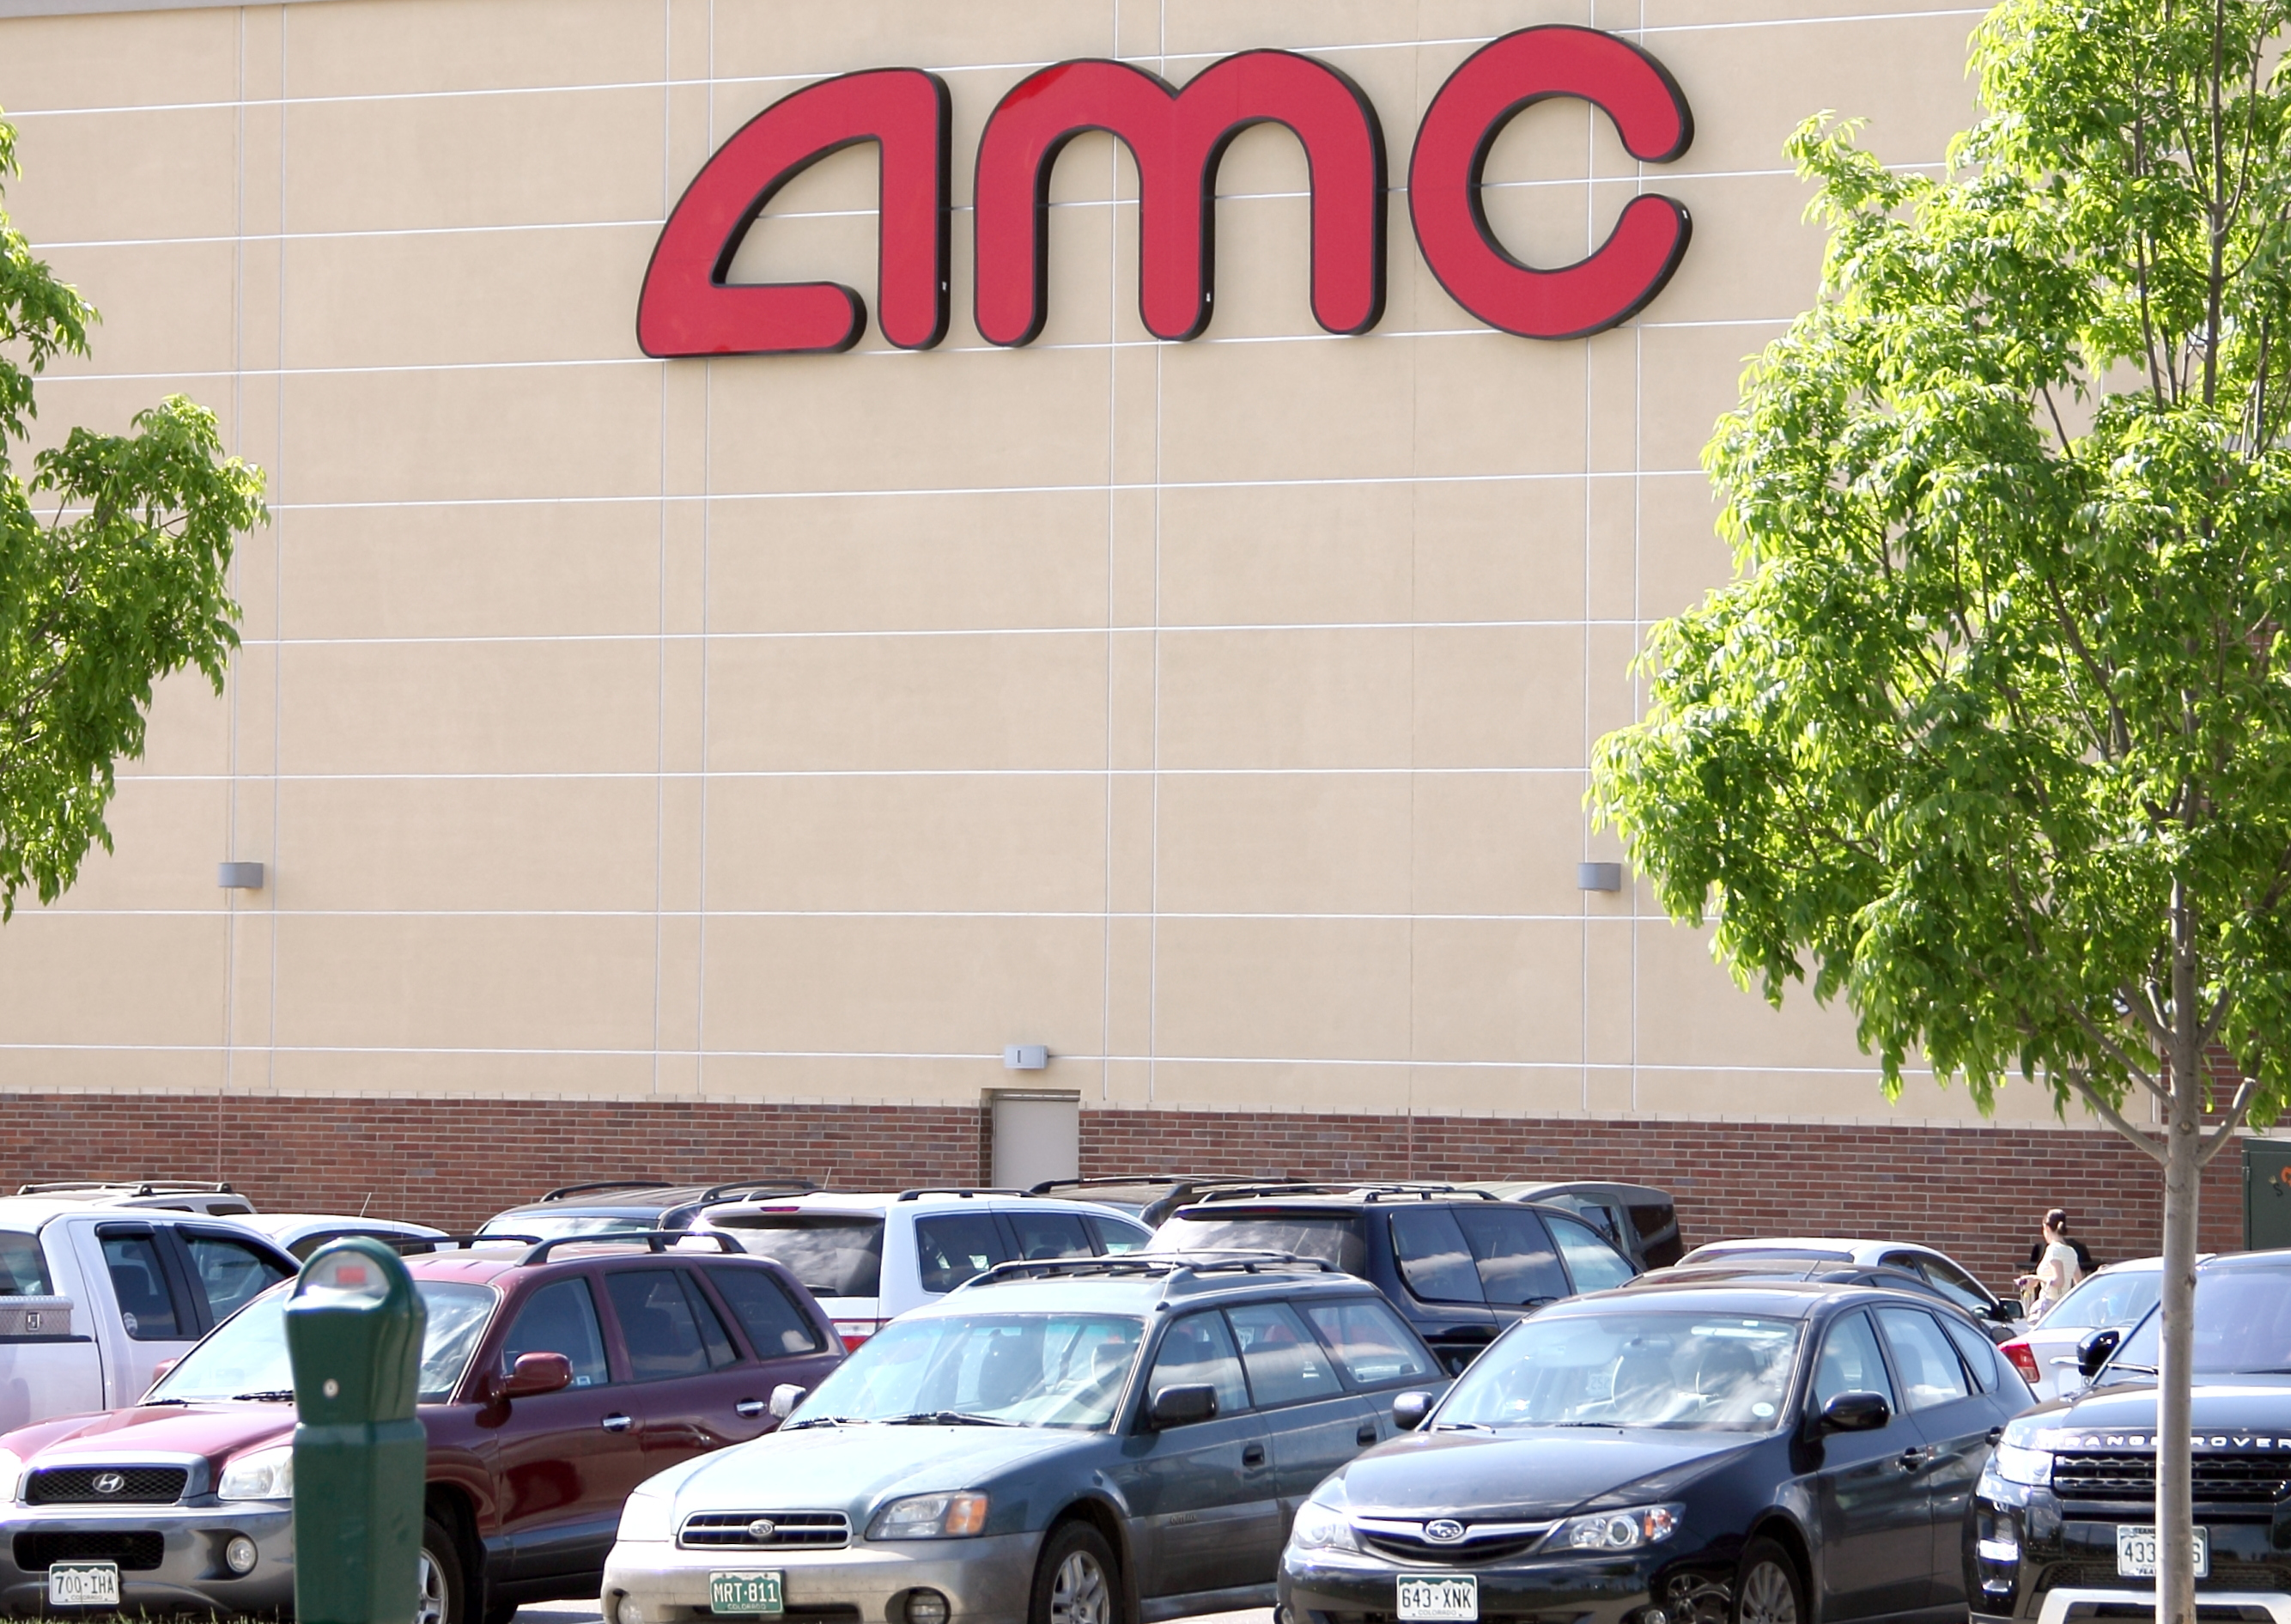 Westminster,  U.S.A. - May 6, 2012:  A parking lot full of movie goer's vehicles, and movie goer's approaching the entrance.  A large 'AMC' sign in red on cream colored stone,  movie goers approaching the entrance.